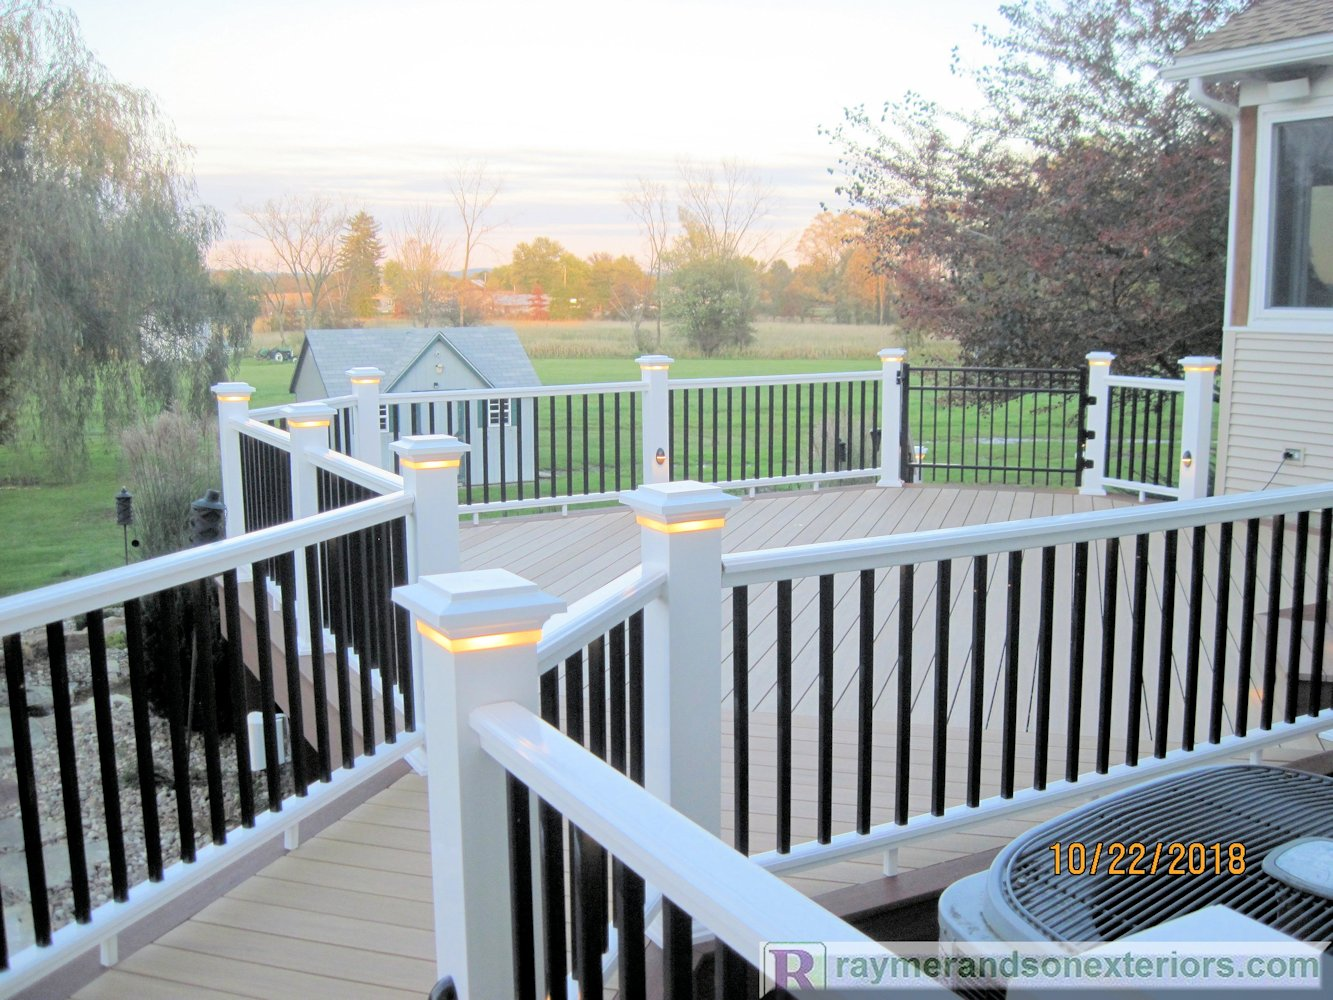 Rsxeteriors-Azek-Vinyl-Deck-LED-Lights-Turbotville-Pennsylvania-11